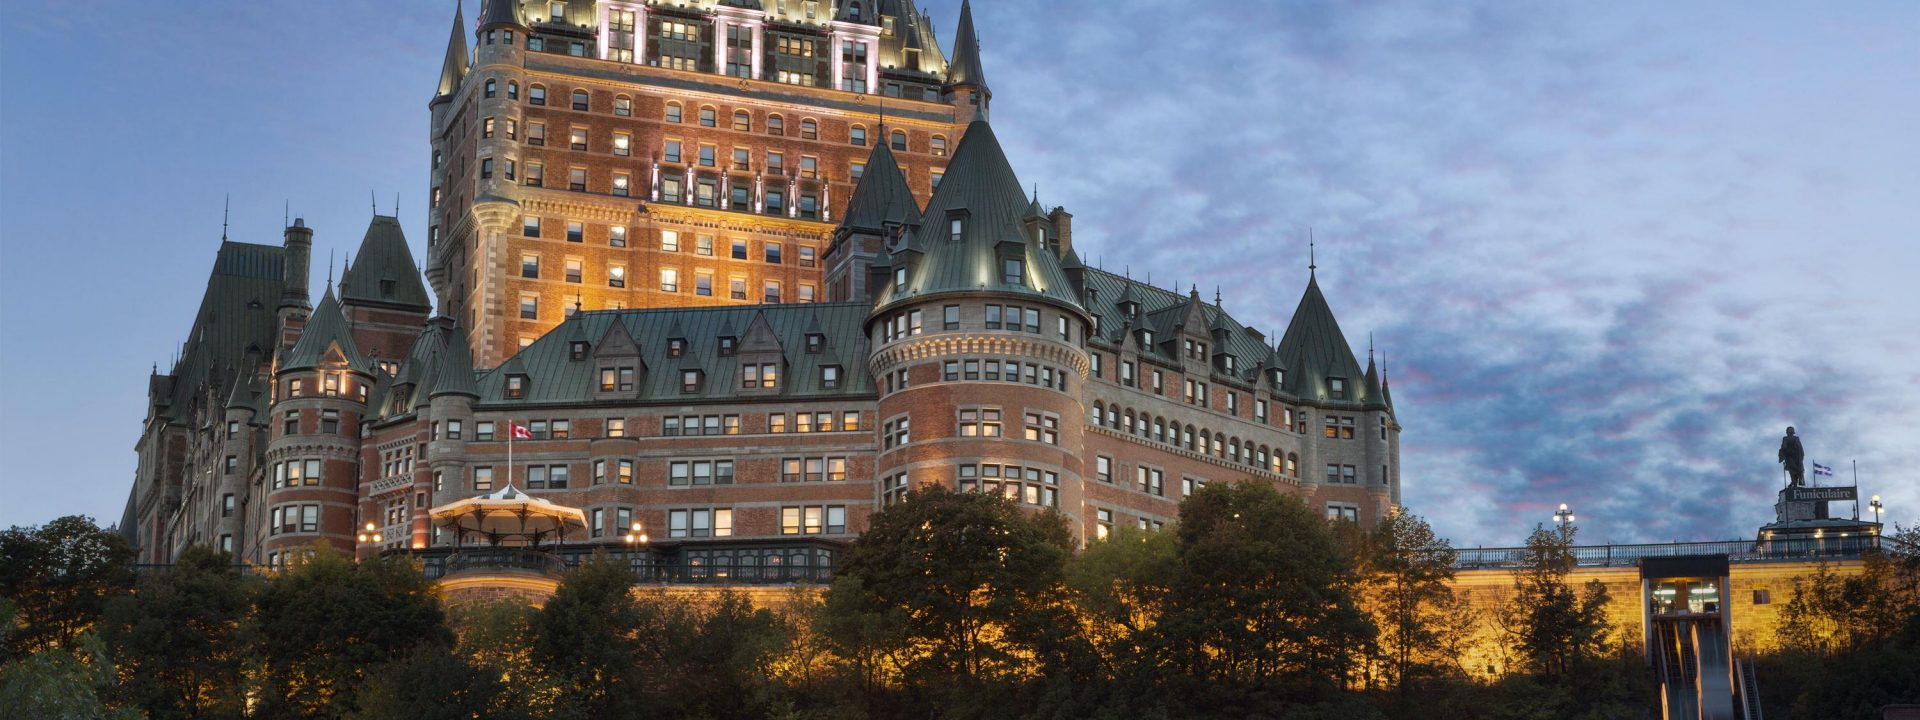 Quebec City's Fairmont Le Chateau Frontenac is aging gracefully at 125 years